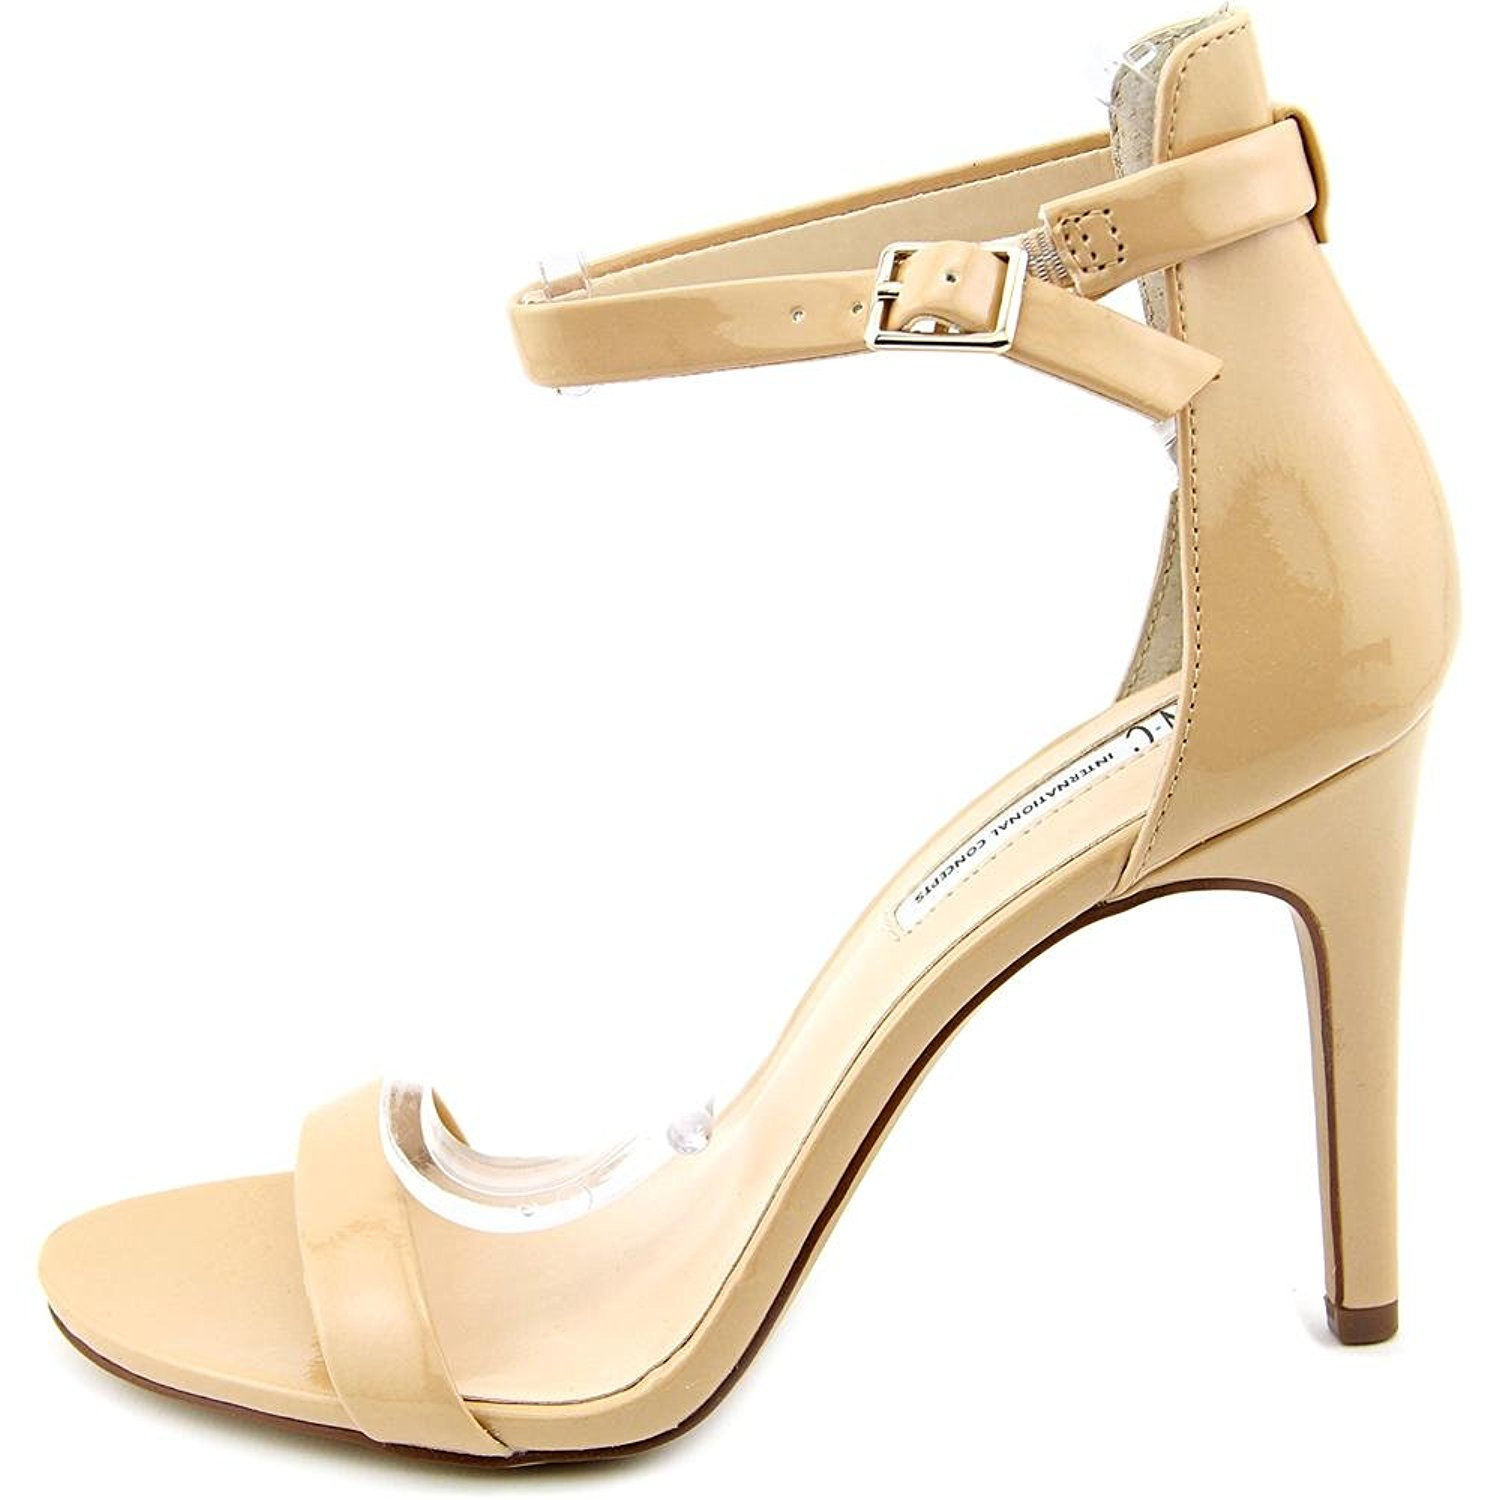 INC International Concepts Damenschuhe roriee Open Toe Casual Ankle Strap Sandales